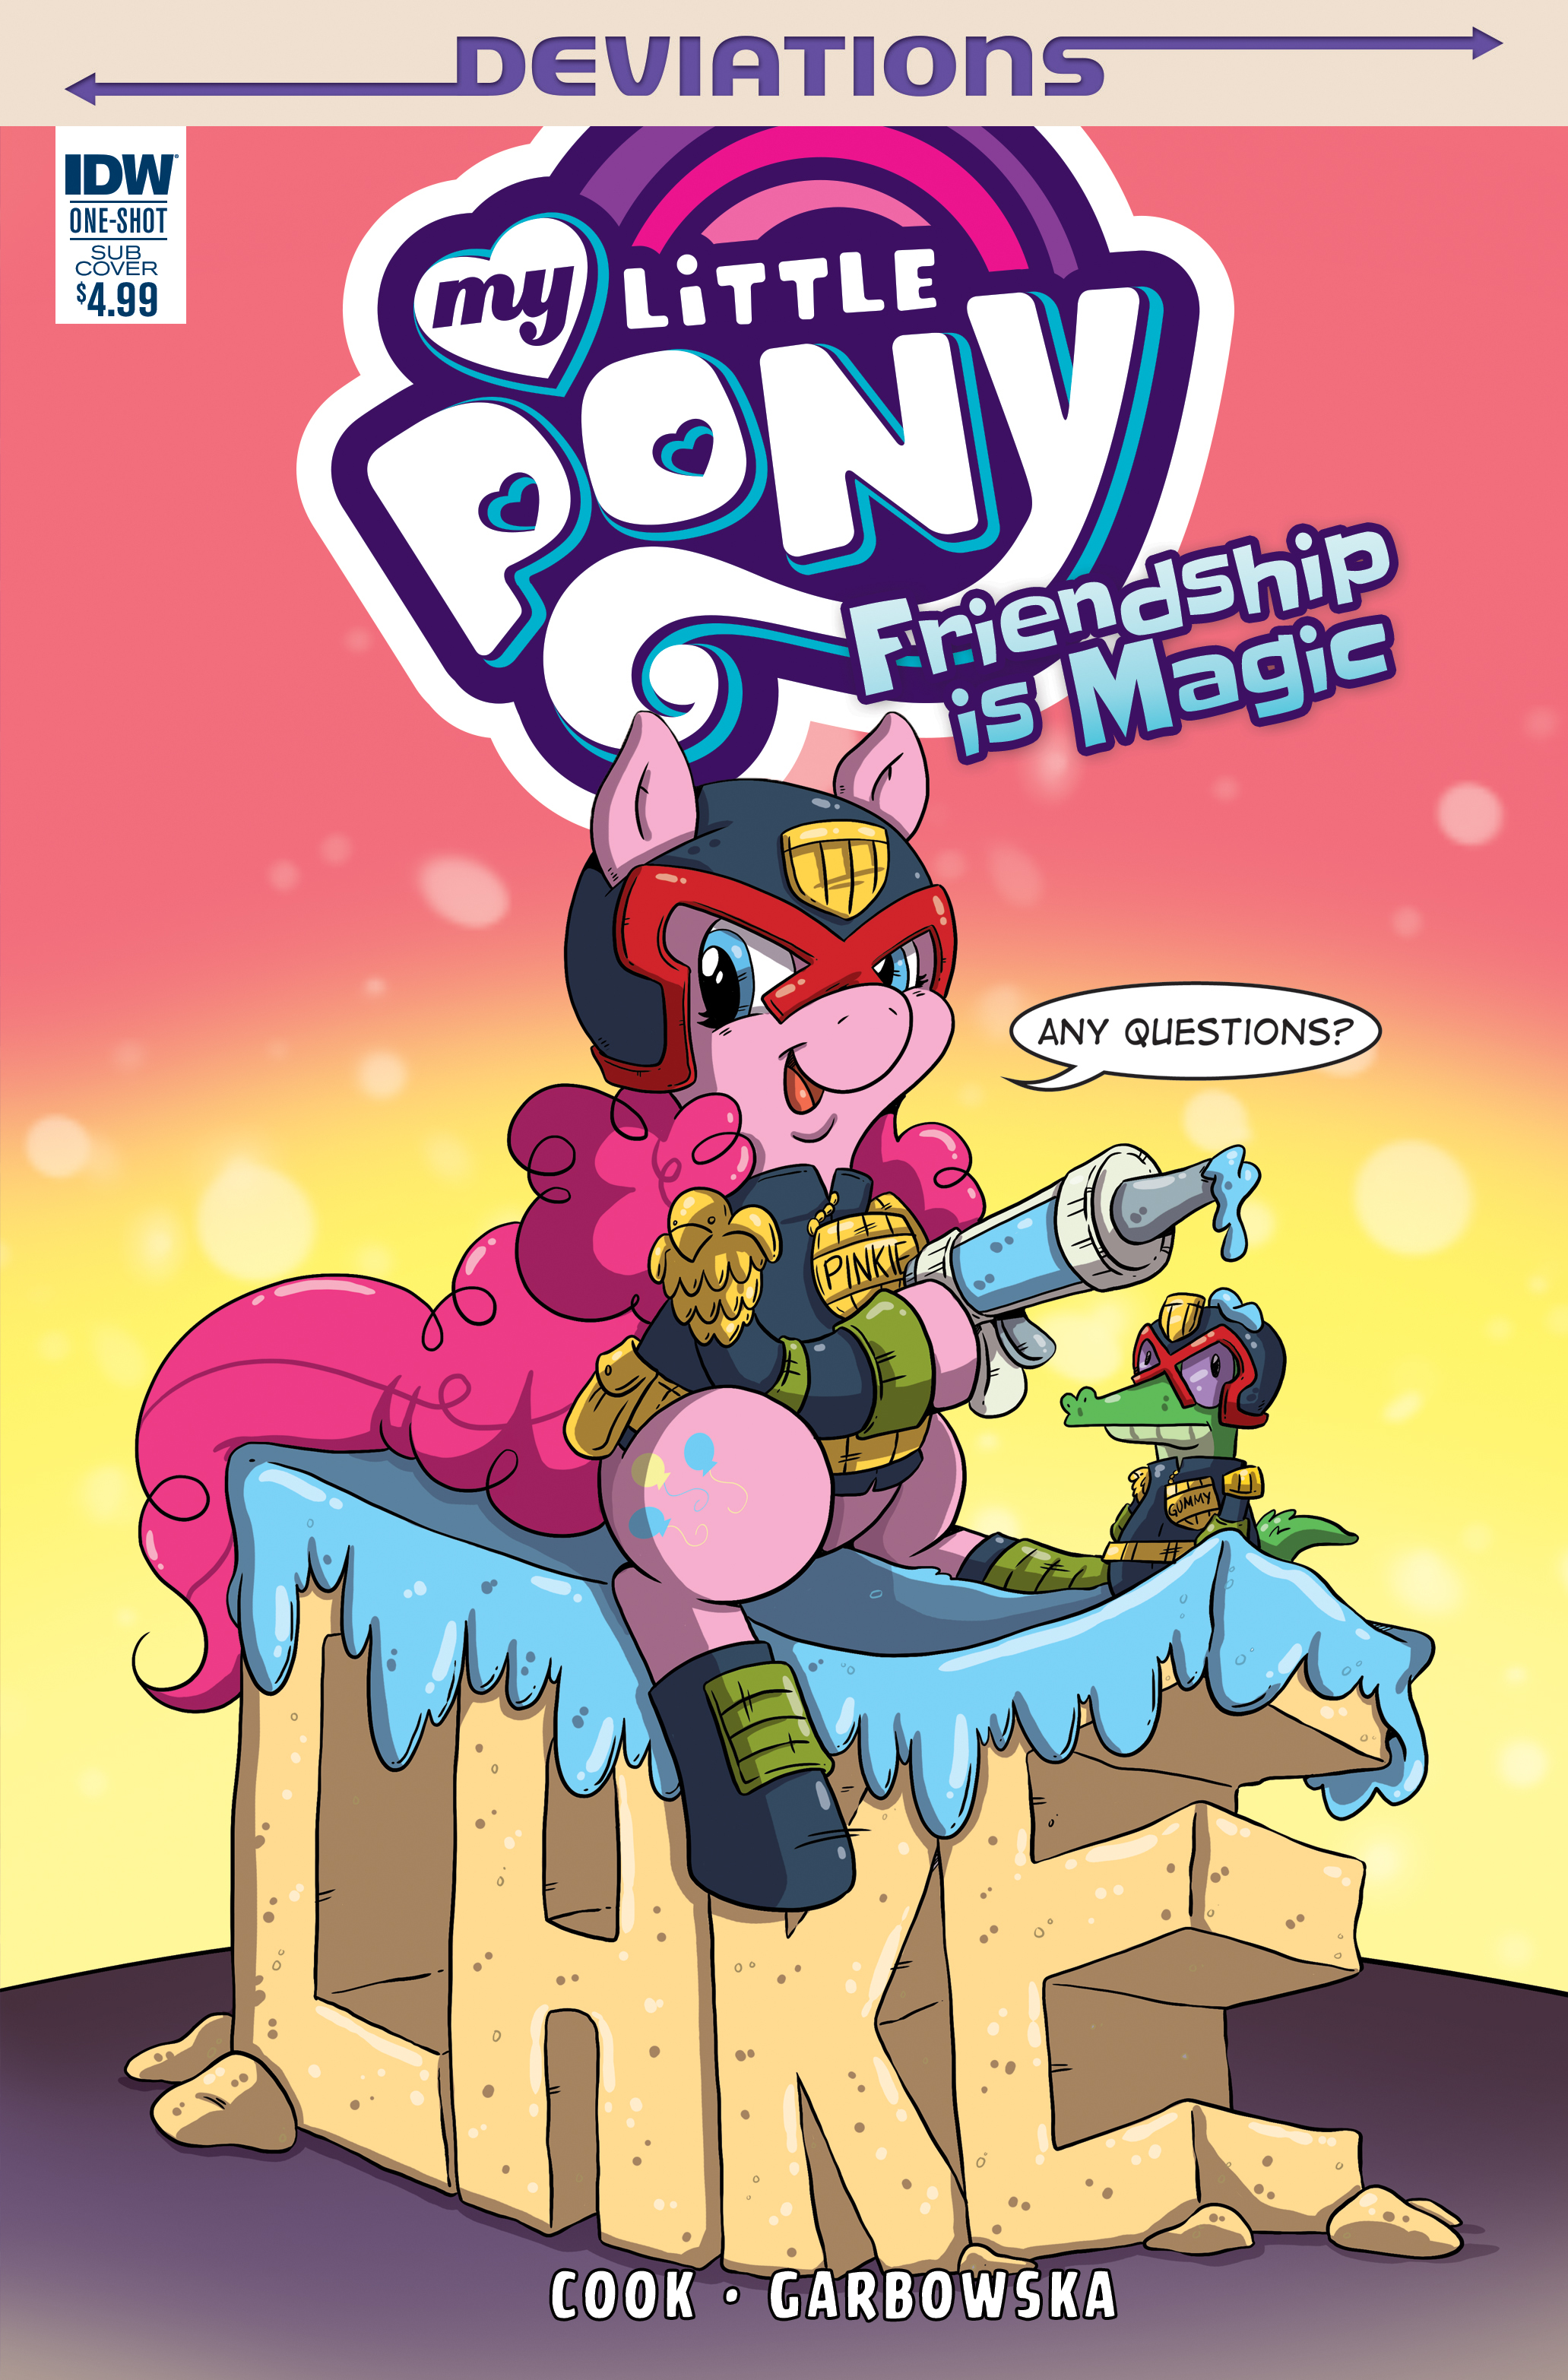 My Little Pony Judge Dredd variant cover for IDW